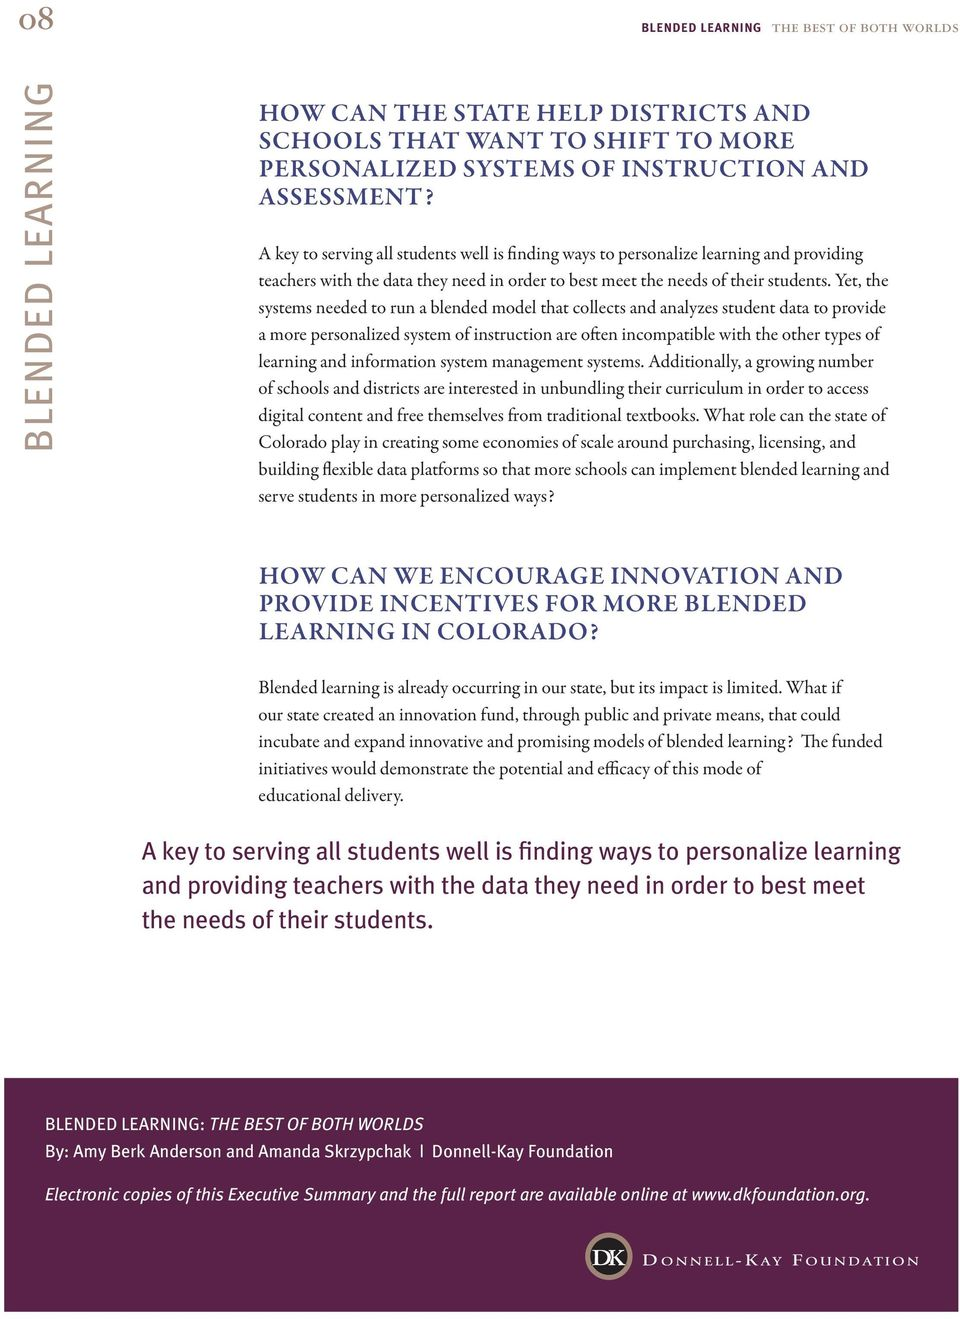 Yet, the systems needed to run a blended model that collects and analyzes student data to provide a more personalized system of instruction are often incompatible with the other types of learning and